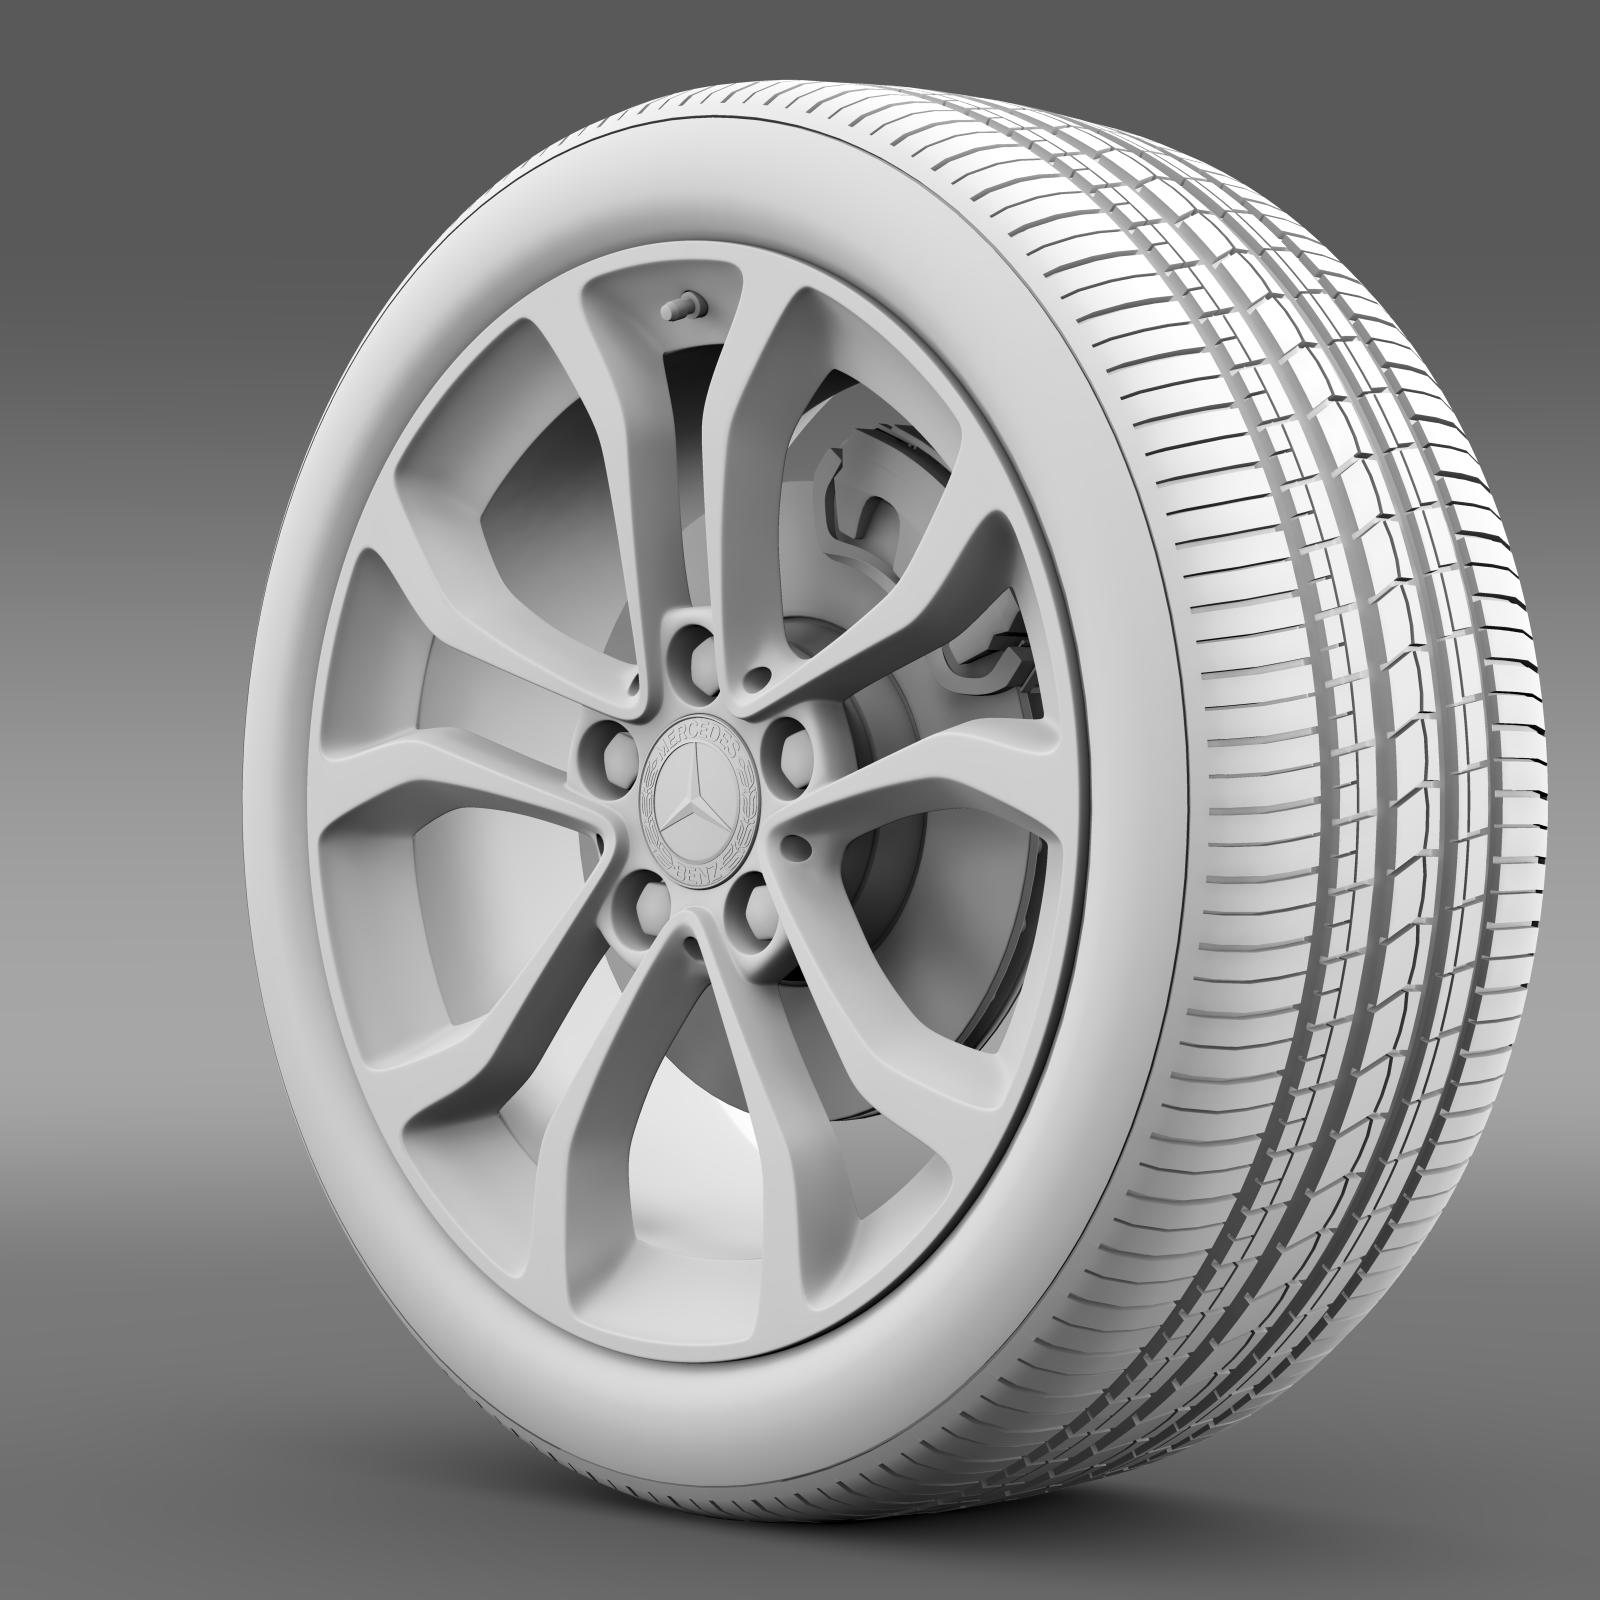 mercedes benz c 220 wheel 3d model 3ds max fbx c4d lwo ma mb hrc xsi obj 210762